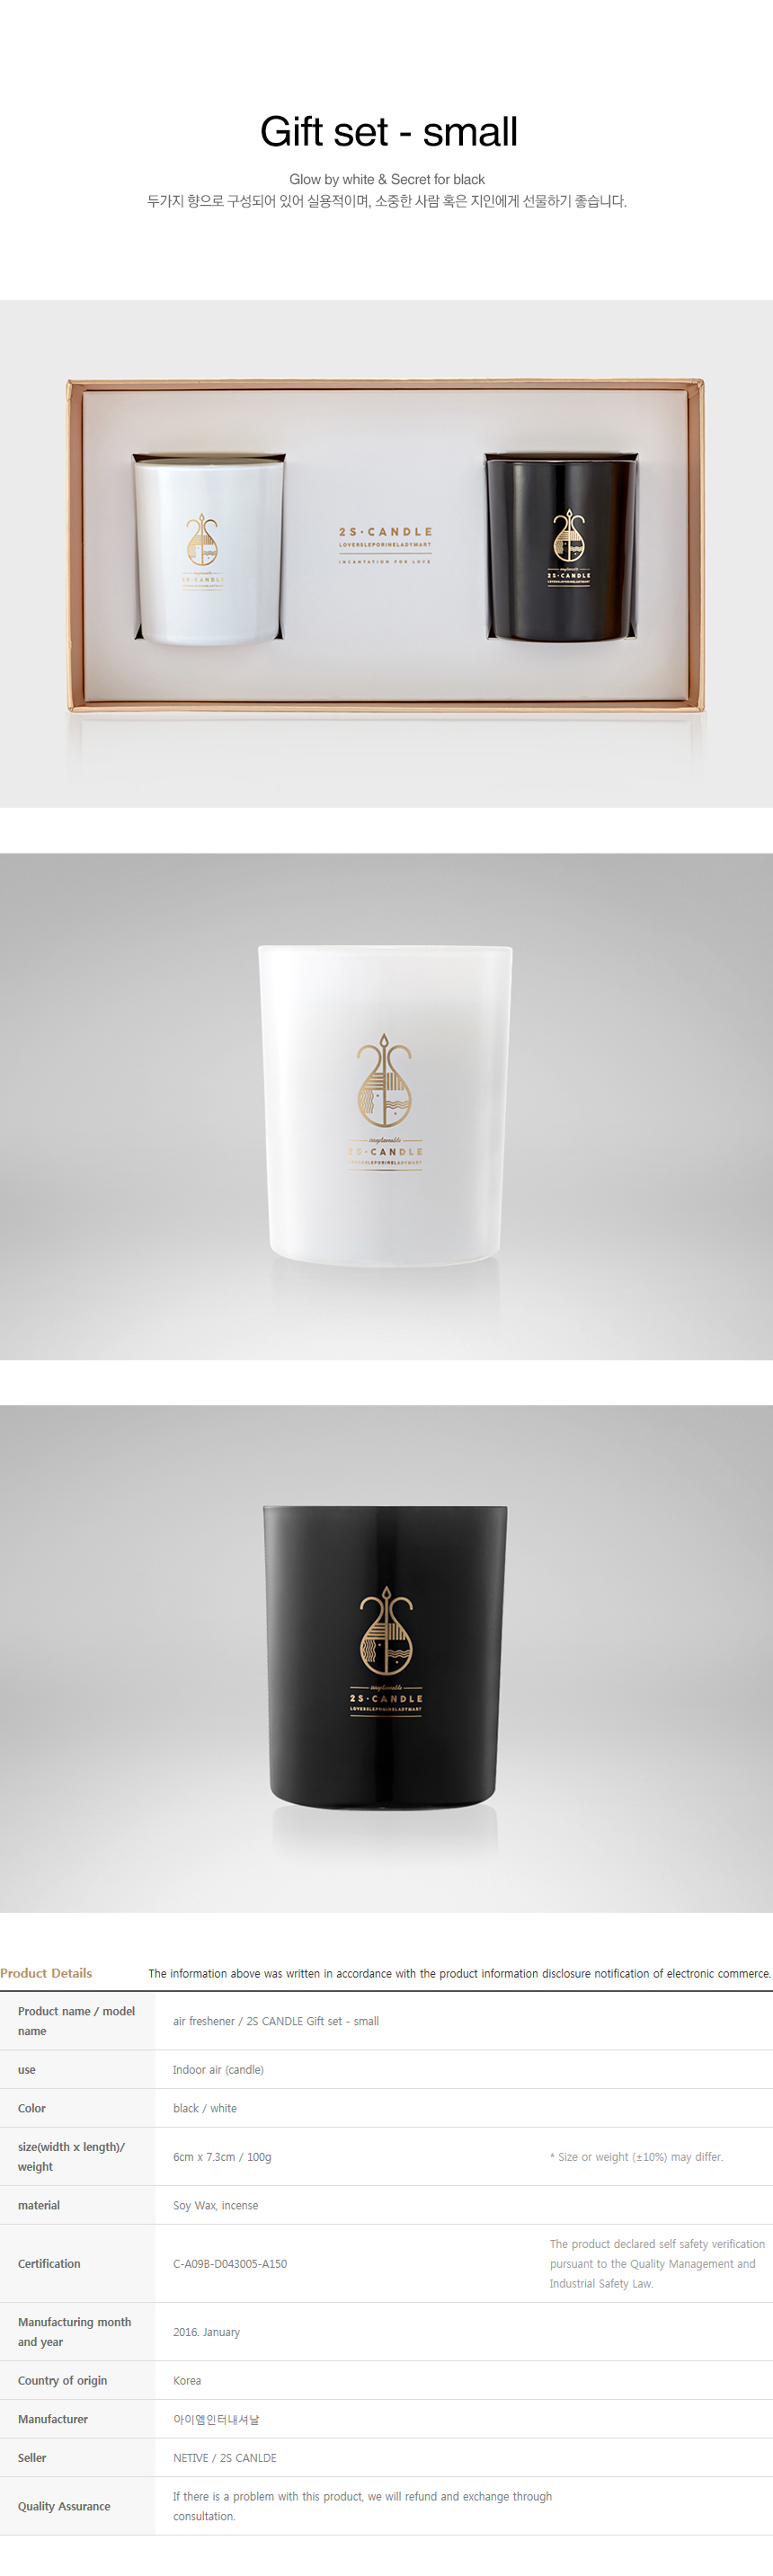 [ 2SCANDLE ] [Limited Quantity]Premium candles made from high-grade spices.